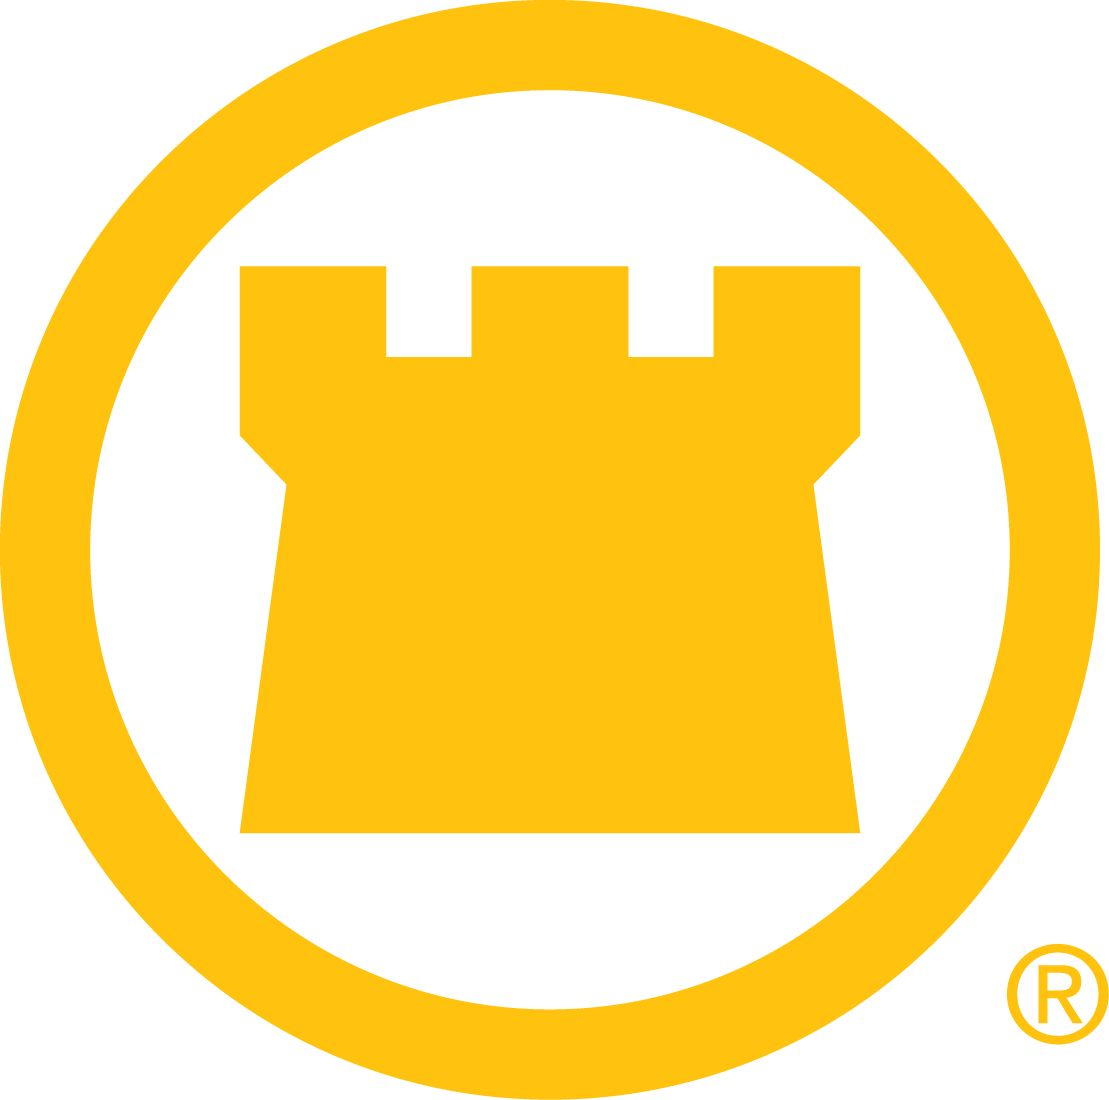 CTC_Symbol_Yellow